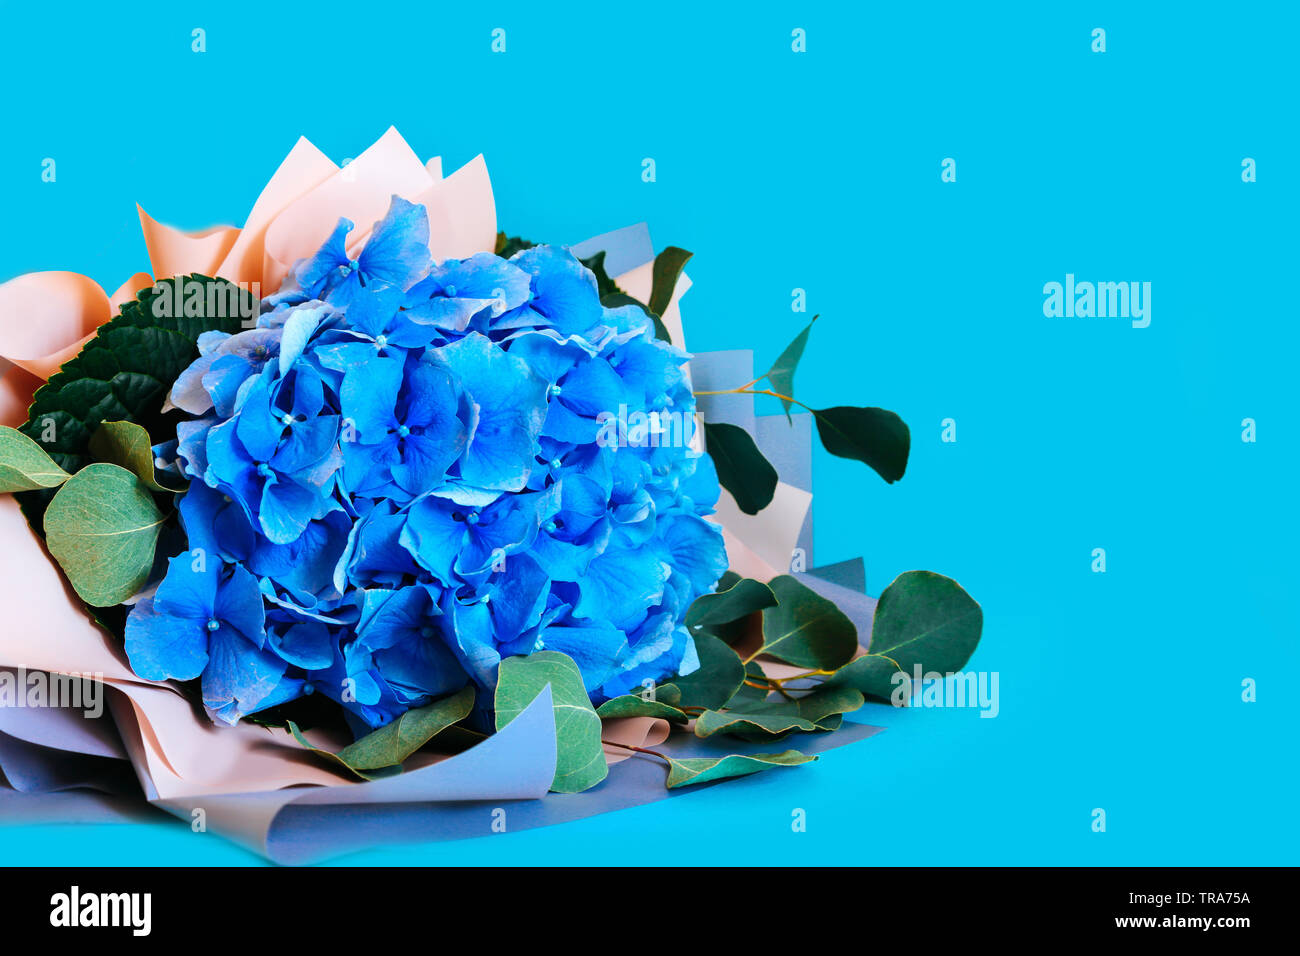 Bouquet Blue Hydrangea On A Blue Background Wedding Flowers Or Sale In The Store Stock Photo Alamy